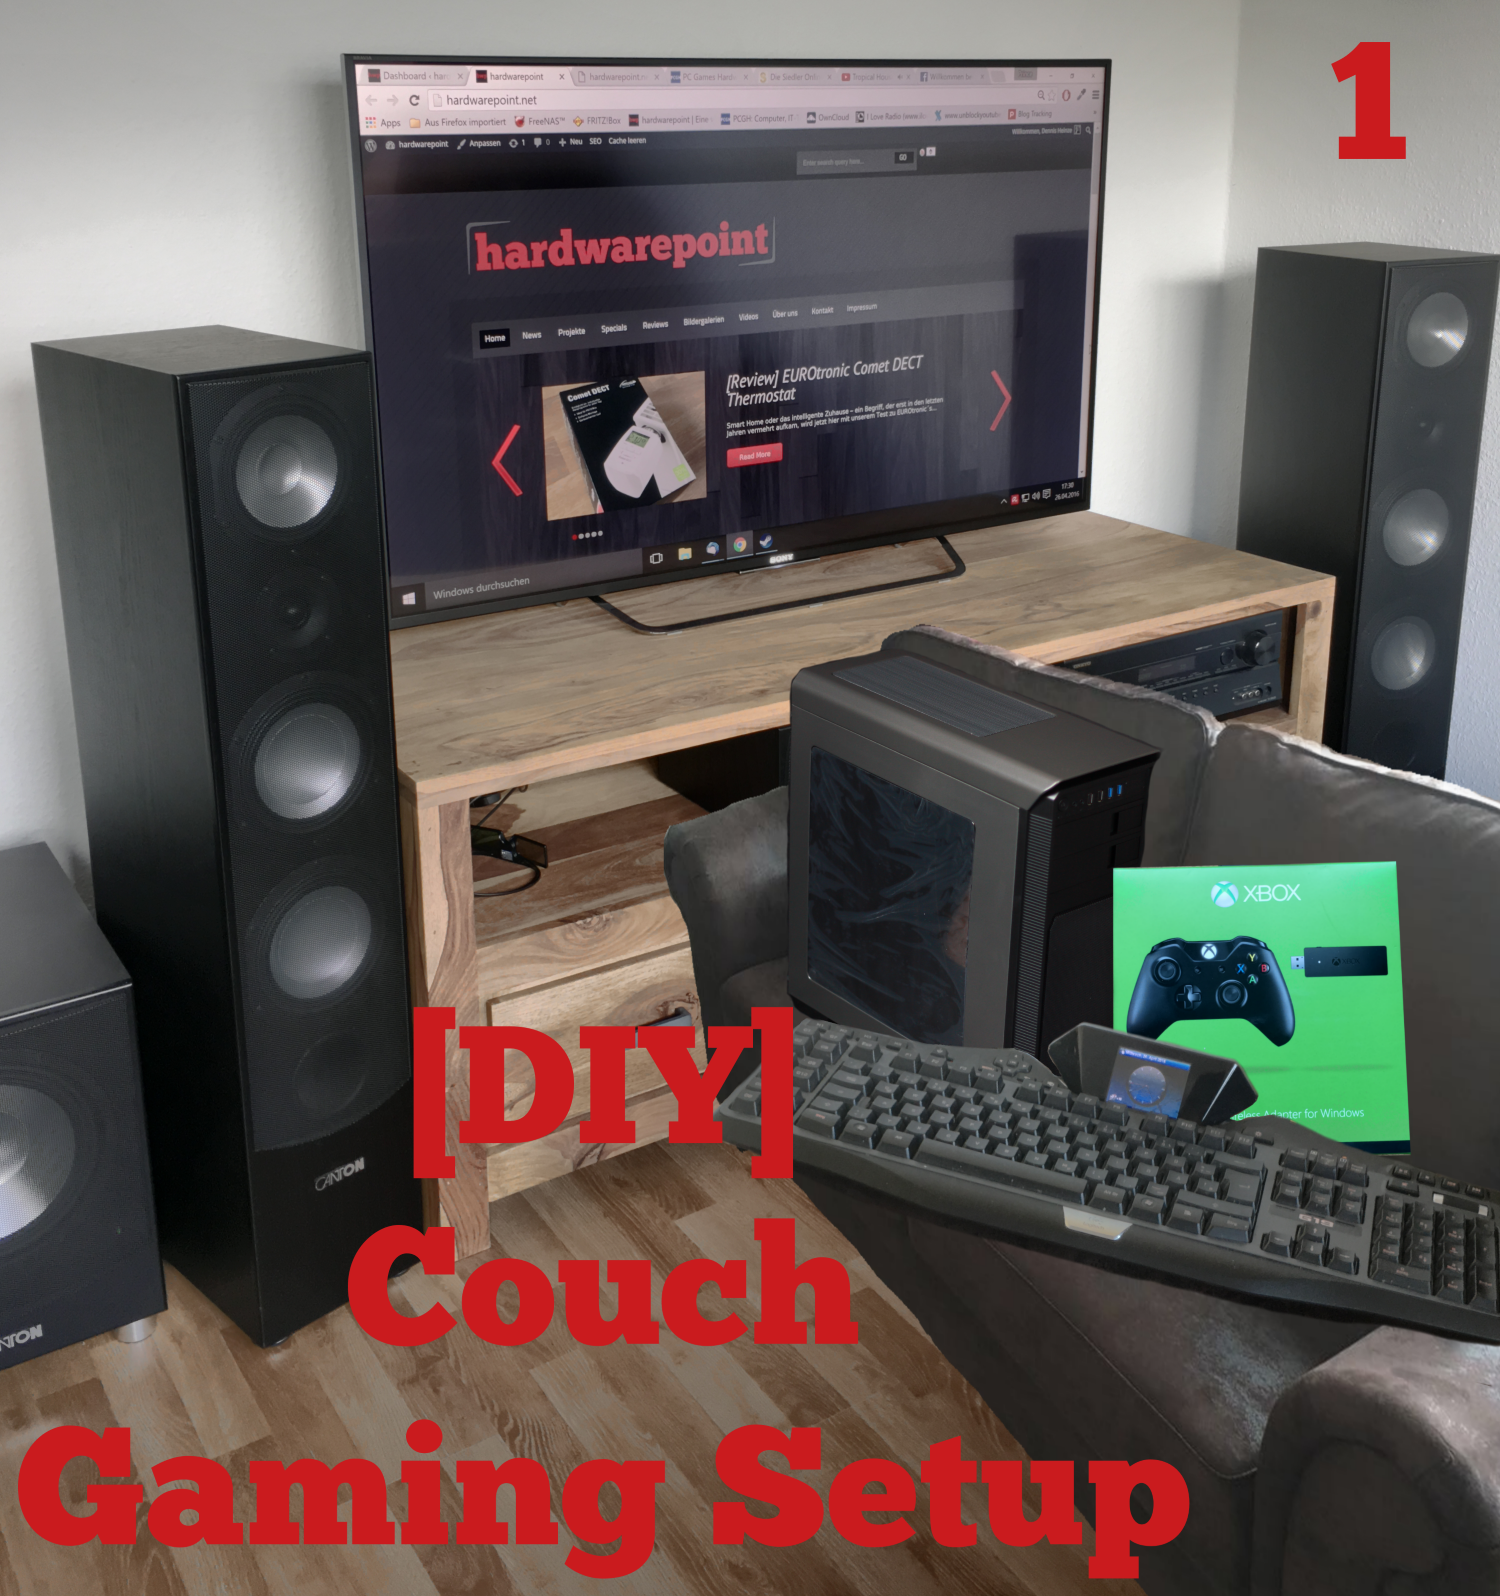 couchgaming setup TV_titel_1.1